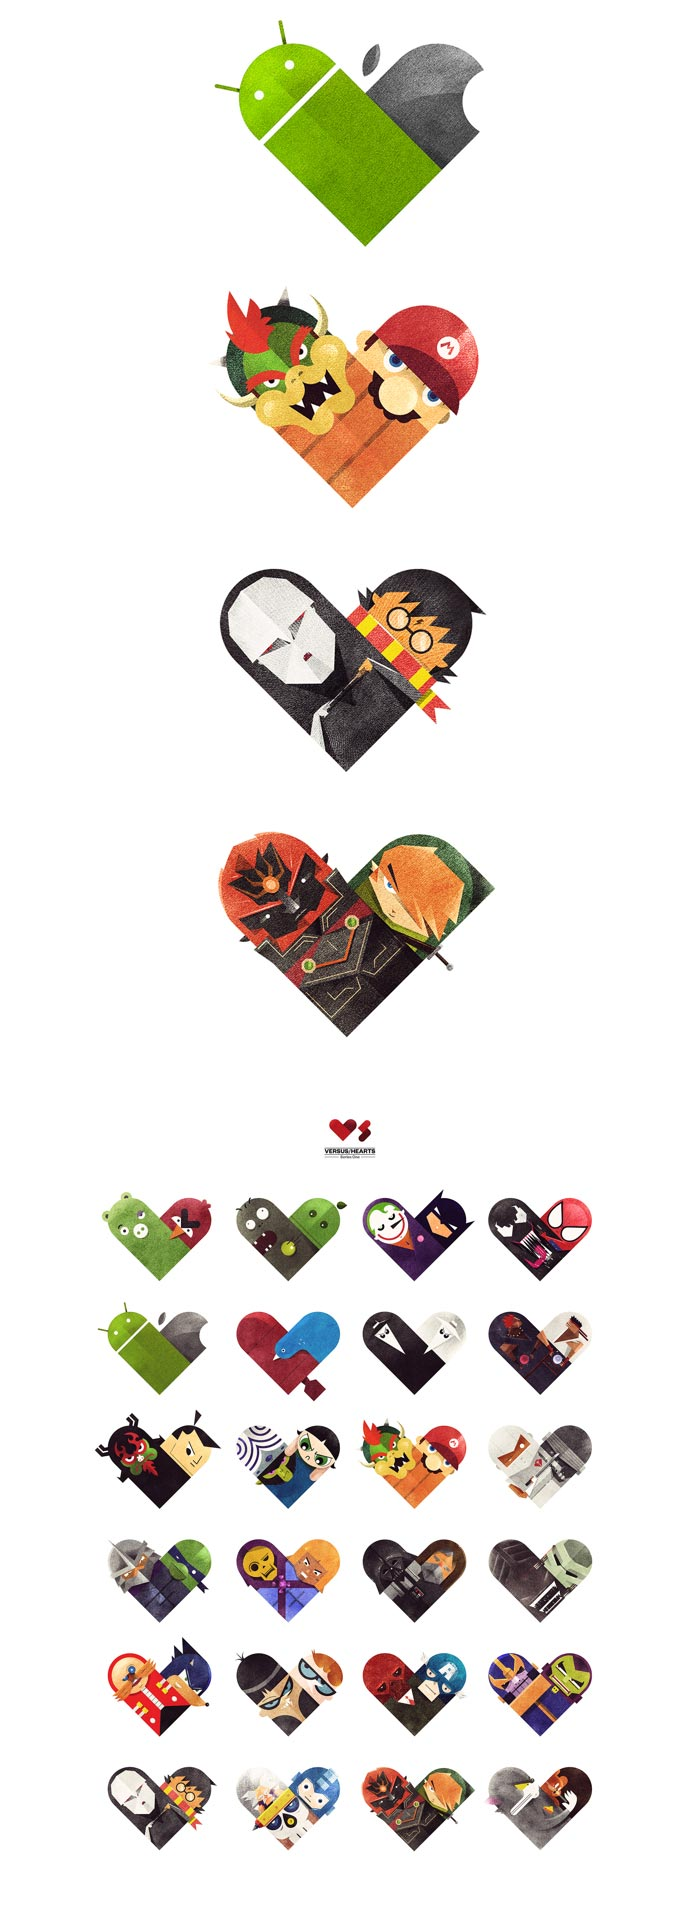 Dan Matutina / Illustration series - Versus/Hearts